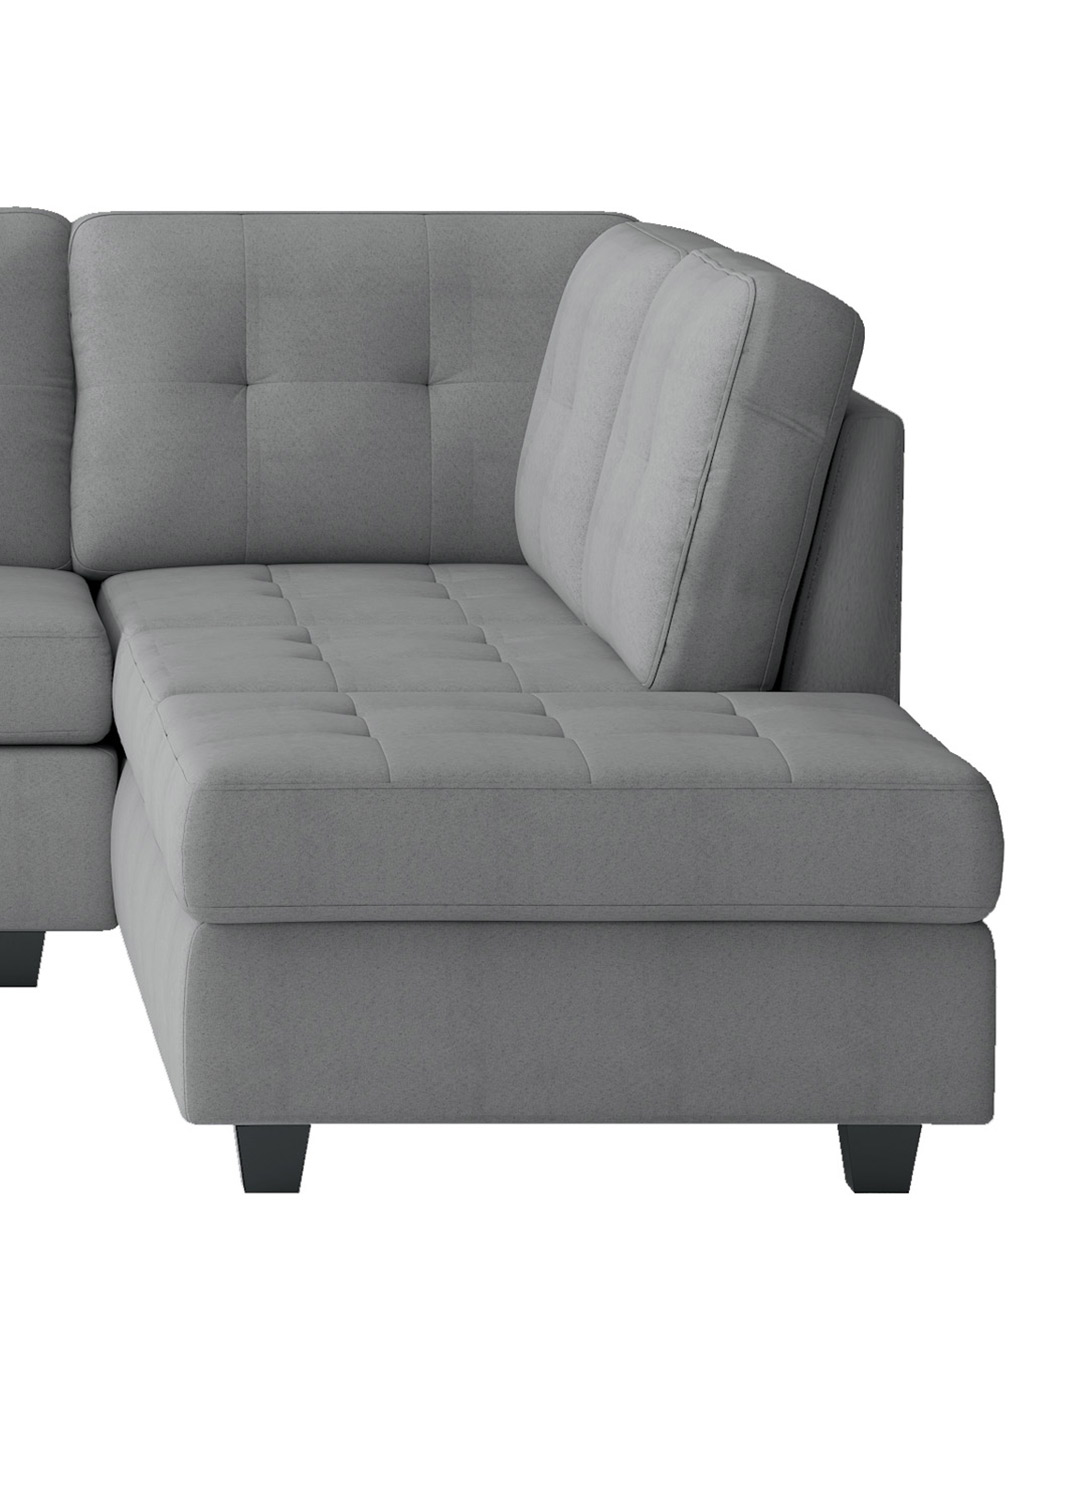 Homelegance Maston Reversible Chaise, Left/Right Unit - Light gray